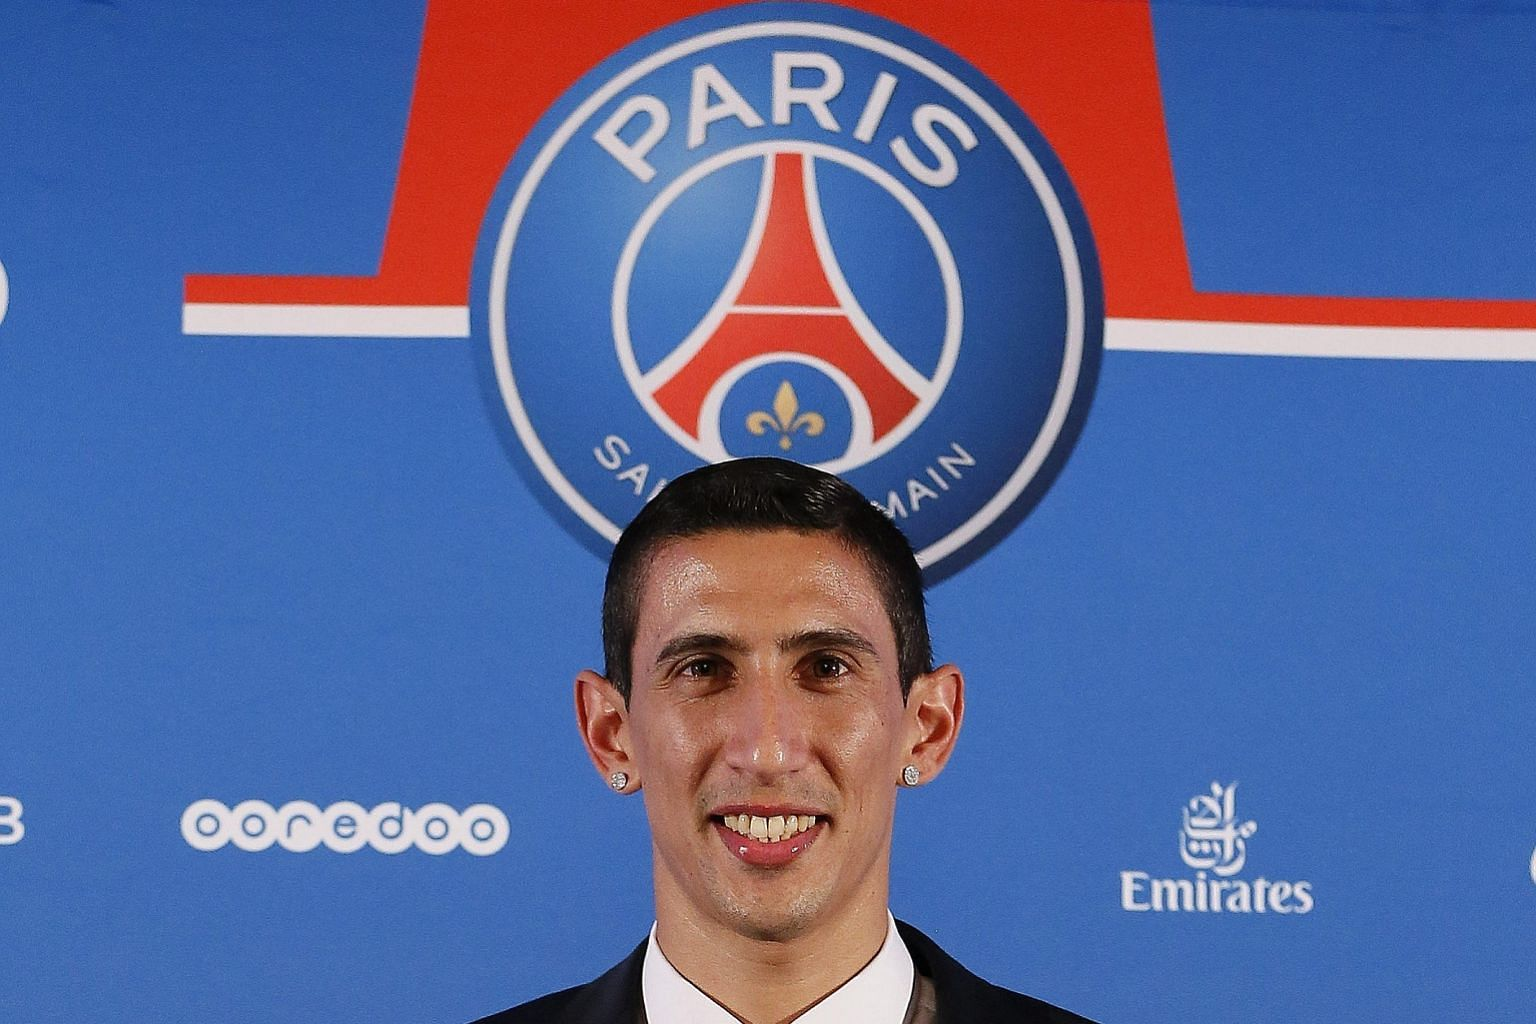 Angel di Maria should settle down well in Paris with the help of countrymen Ezequiel Lavezzi and Javier Pastore.